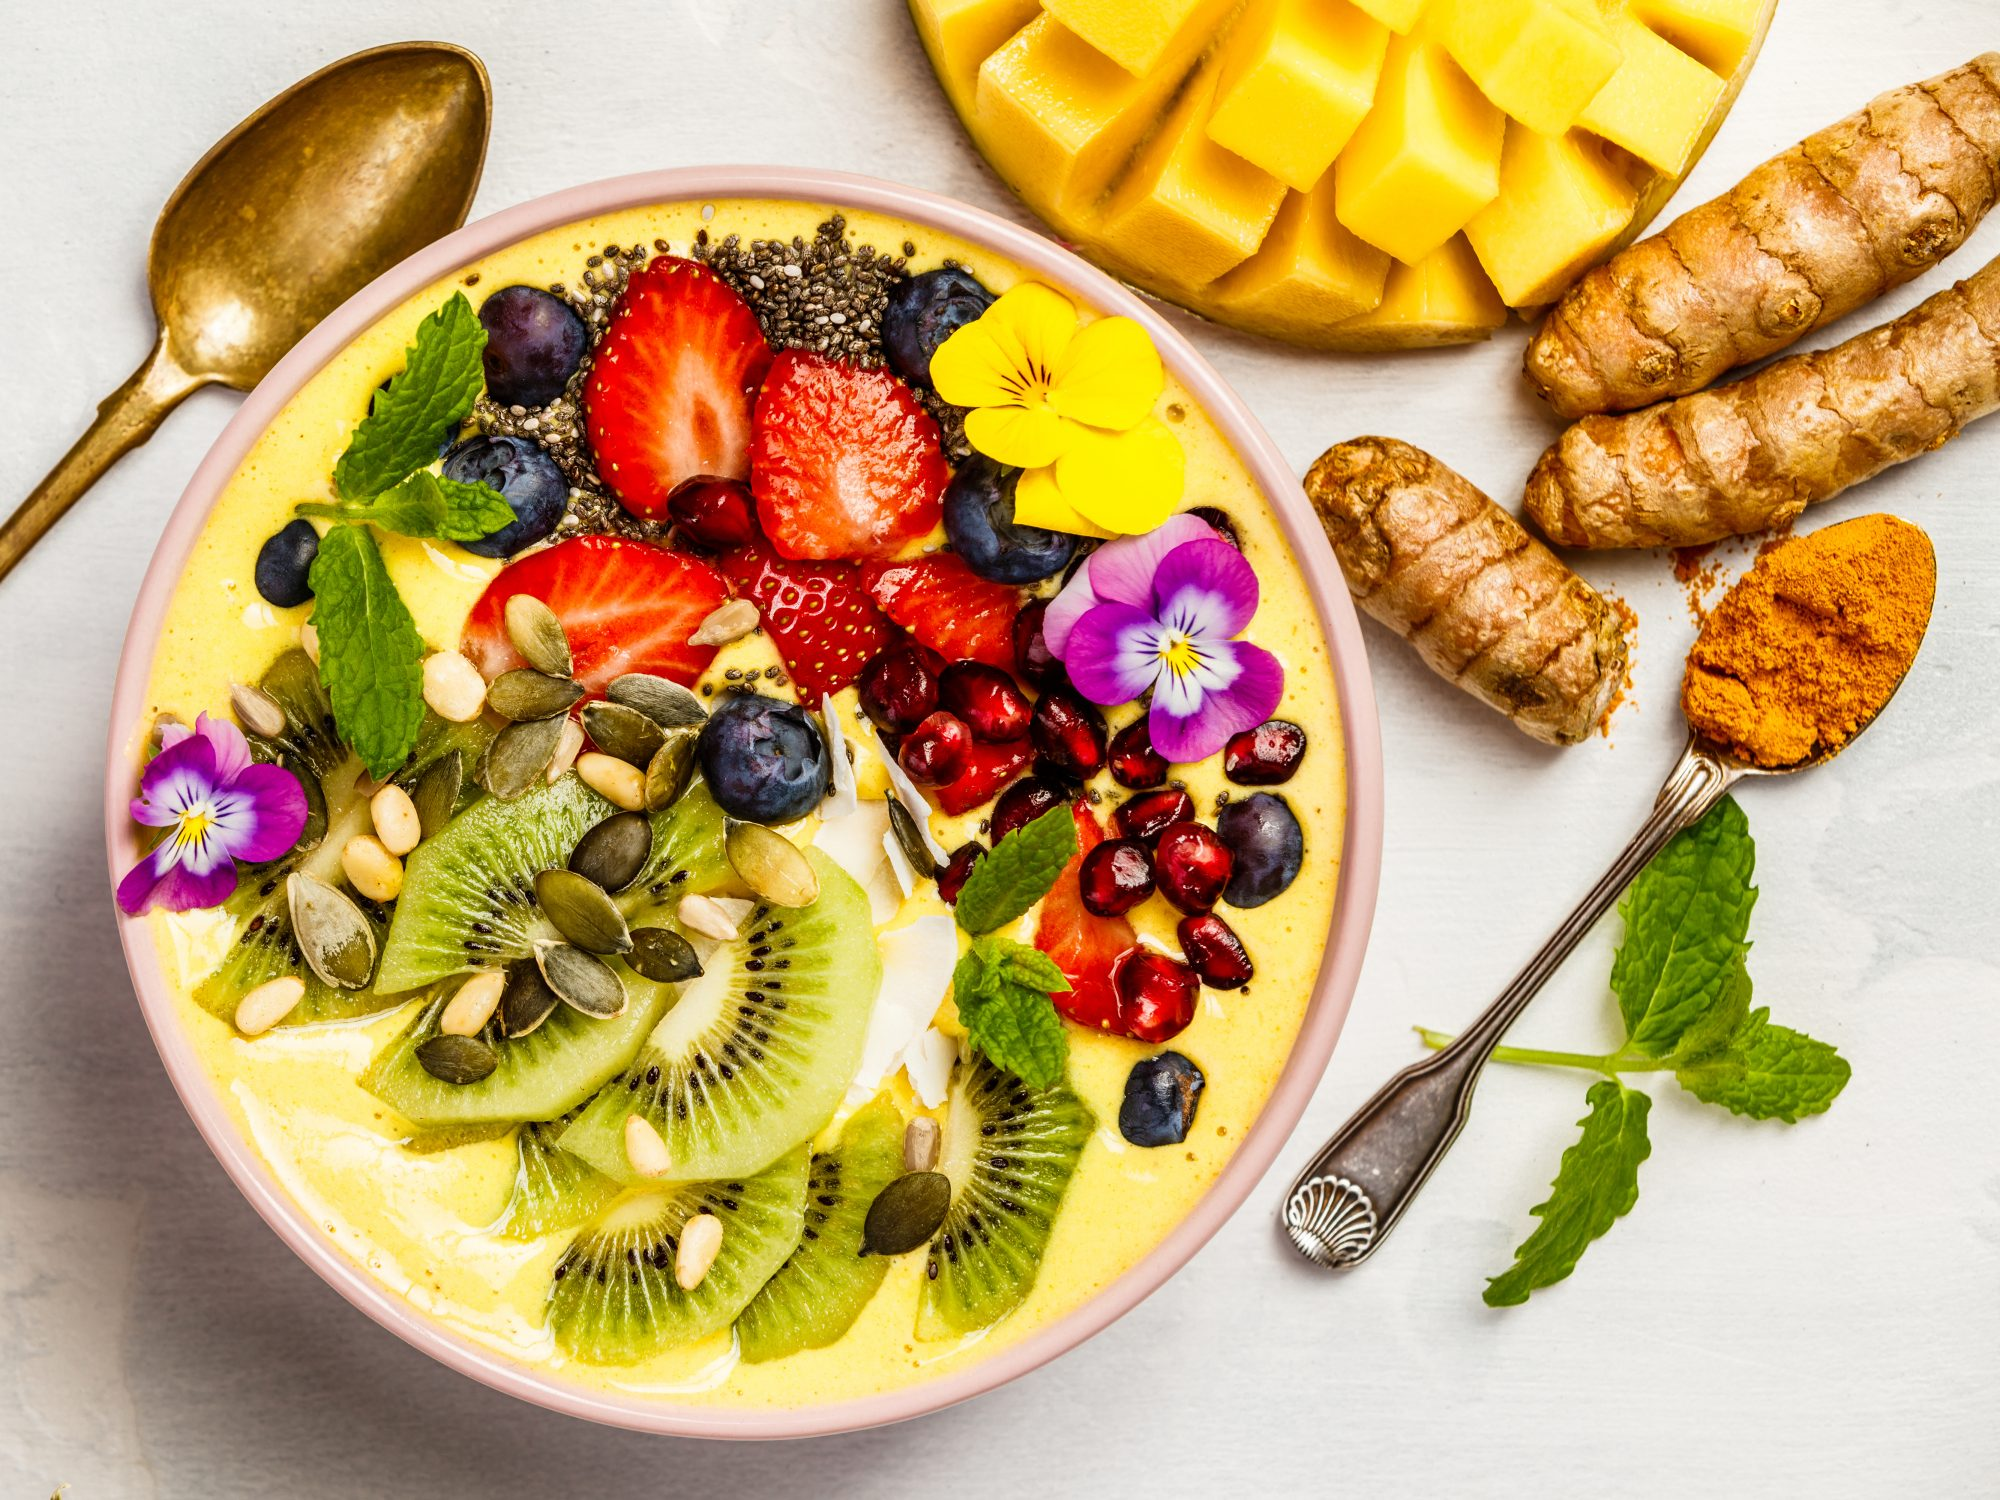 What Is an Anti-Inflammatory Diet?: Mango banana pineapple turmeric breakfast superfoods smoothie bowl topped with fruits, berries and seeds